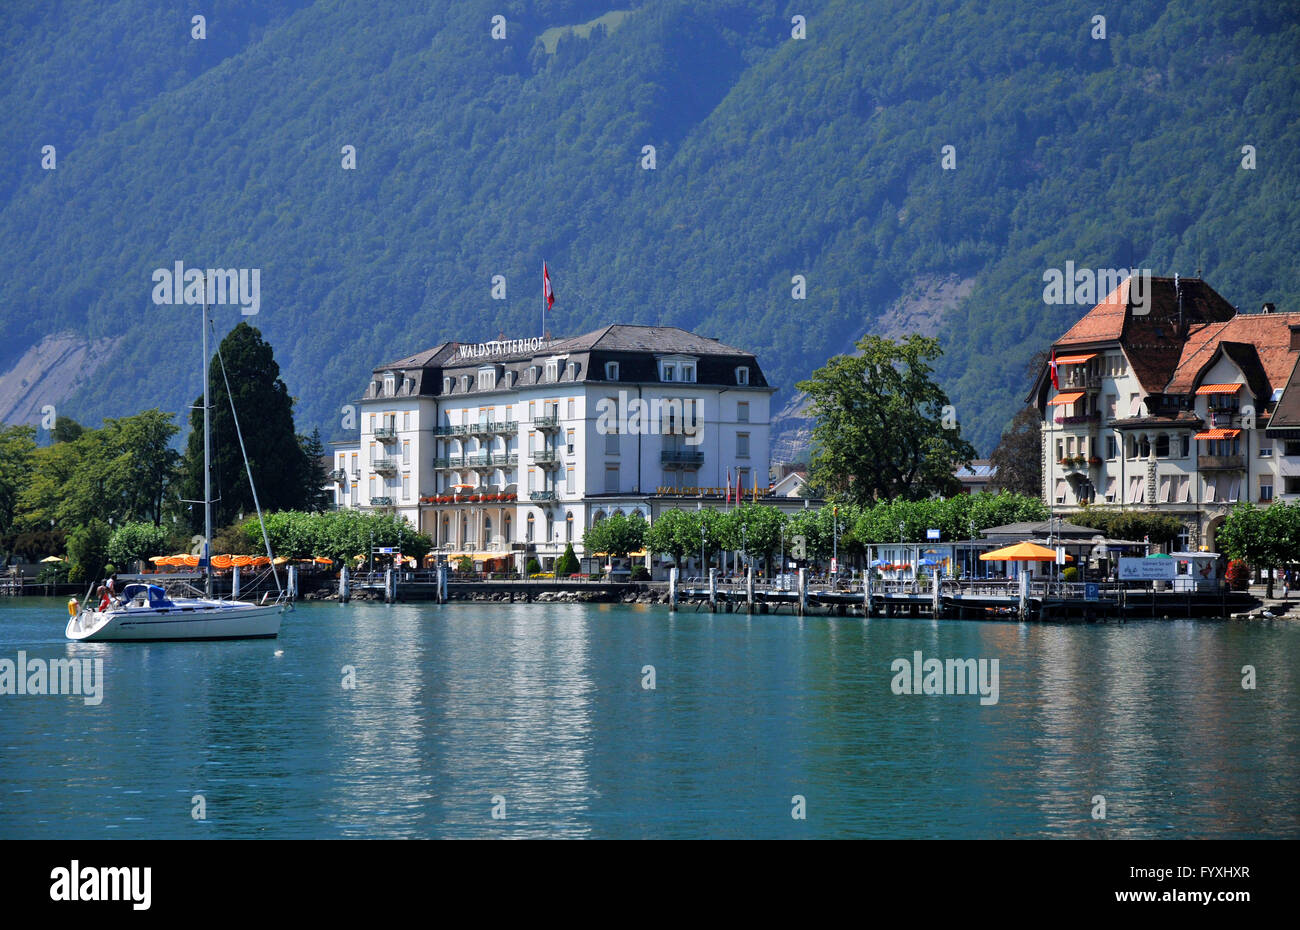 brunnen lake stockfotos brunnen lake bilder alamy. Black Bedroom Furniture Sets. Home Design Ideas